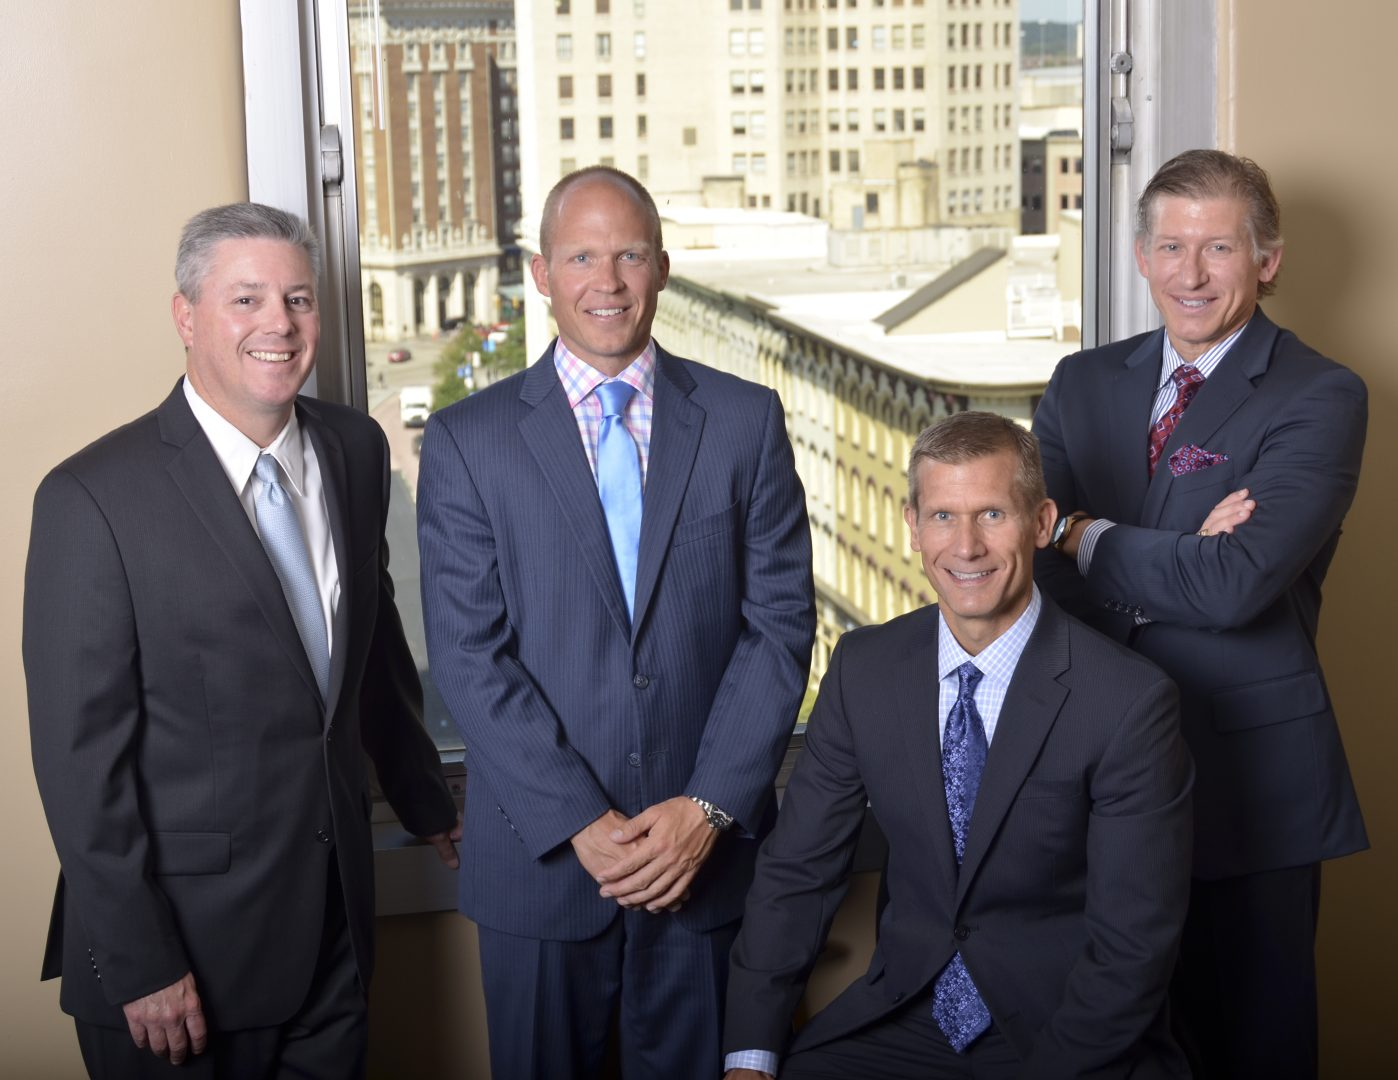 Legal Representation in Grand Rapids MI - West Michigan Defense Team